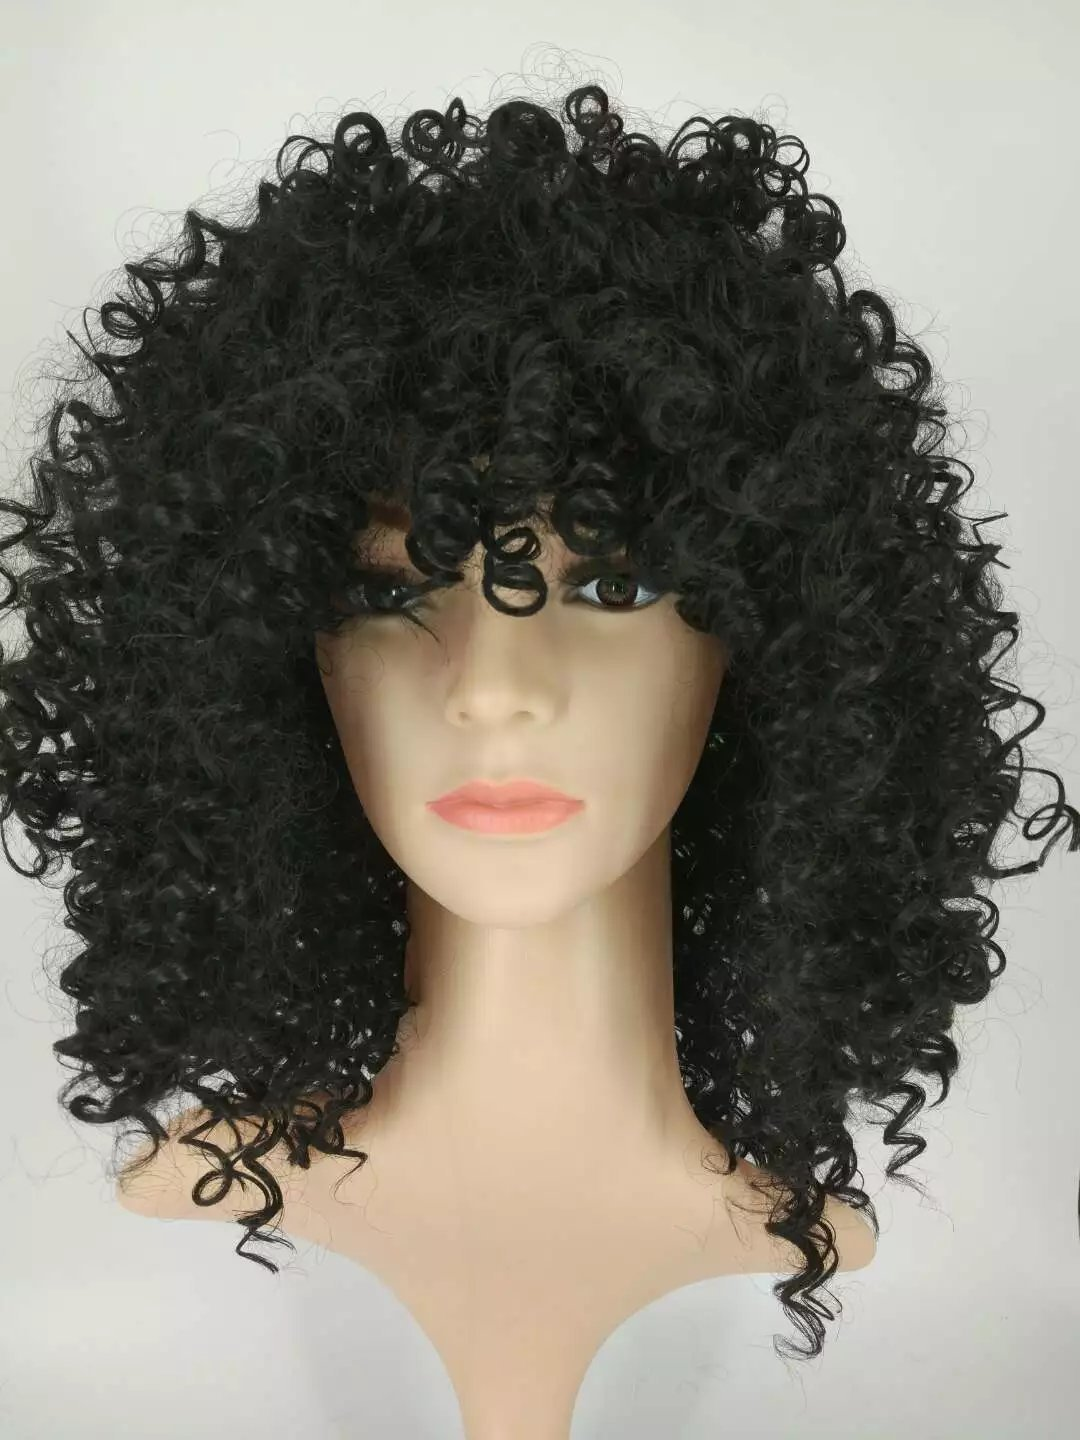 Amazon.com : Hot Short Wigs For Black Women Kinky Curly Synthetic Wigs Natural Cheap Hair Wig With Bangs Pelucas Baratas (Black) : Beauty